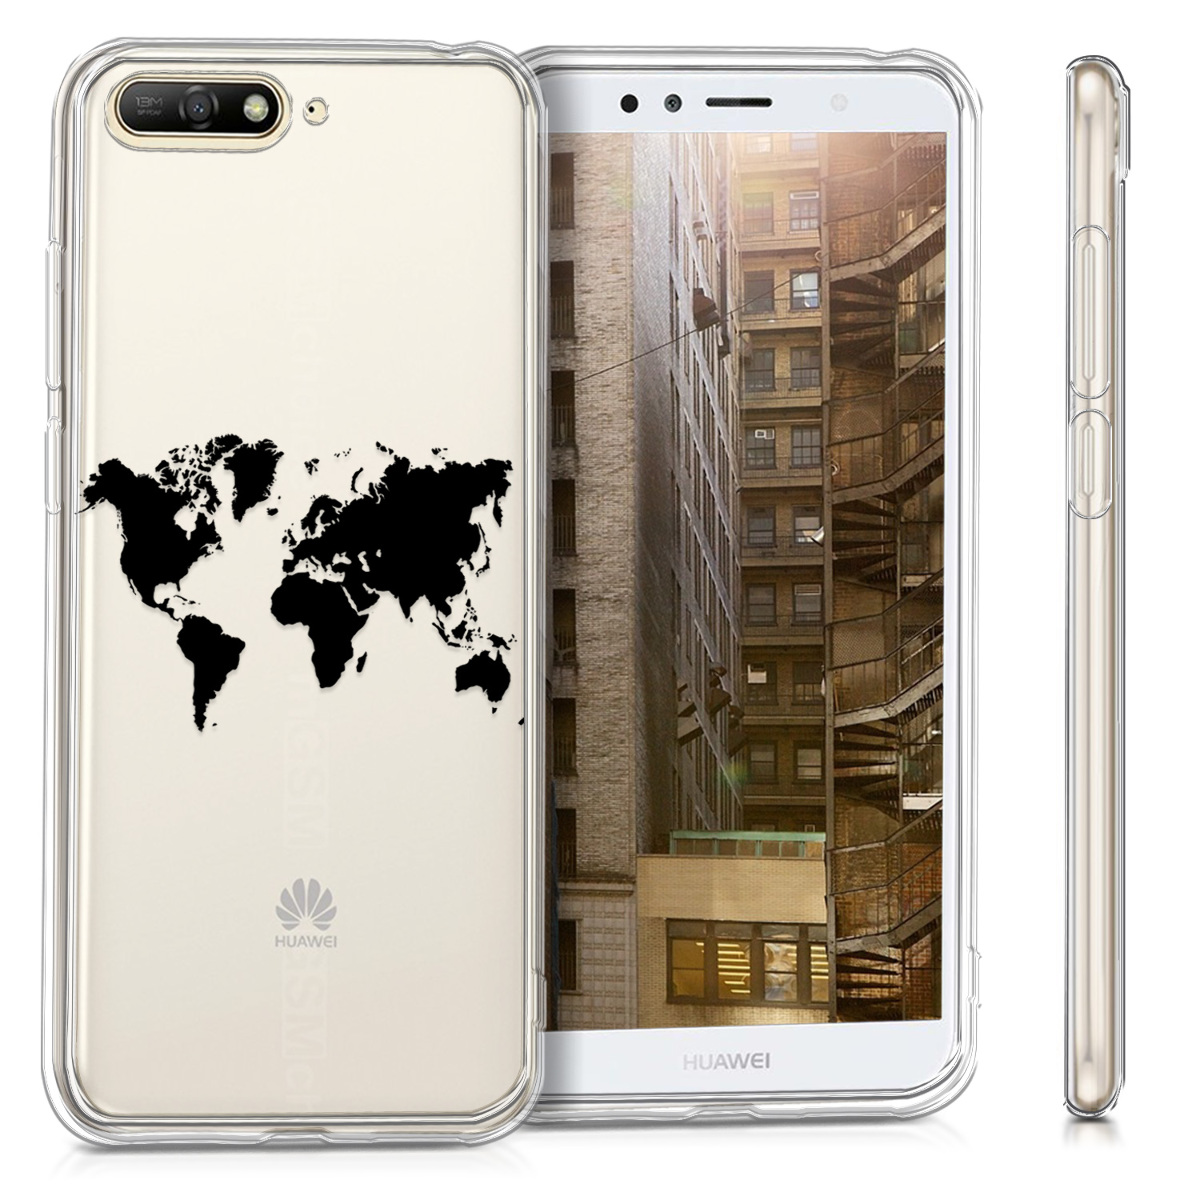 HOUSSE-DE-PROTECTION-POUR-HUAWEI-Y6-2018-TPU-SILICONE-ETUI-PROTEGE-CHOCS